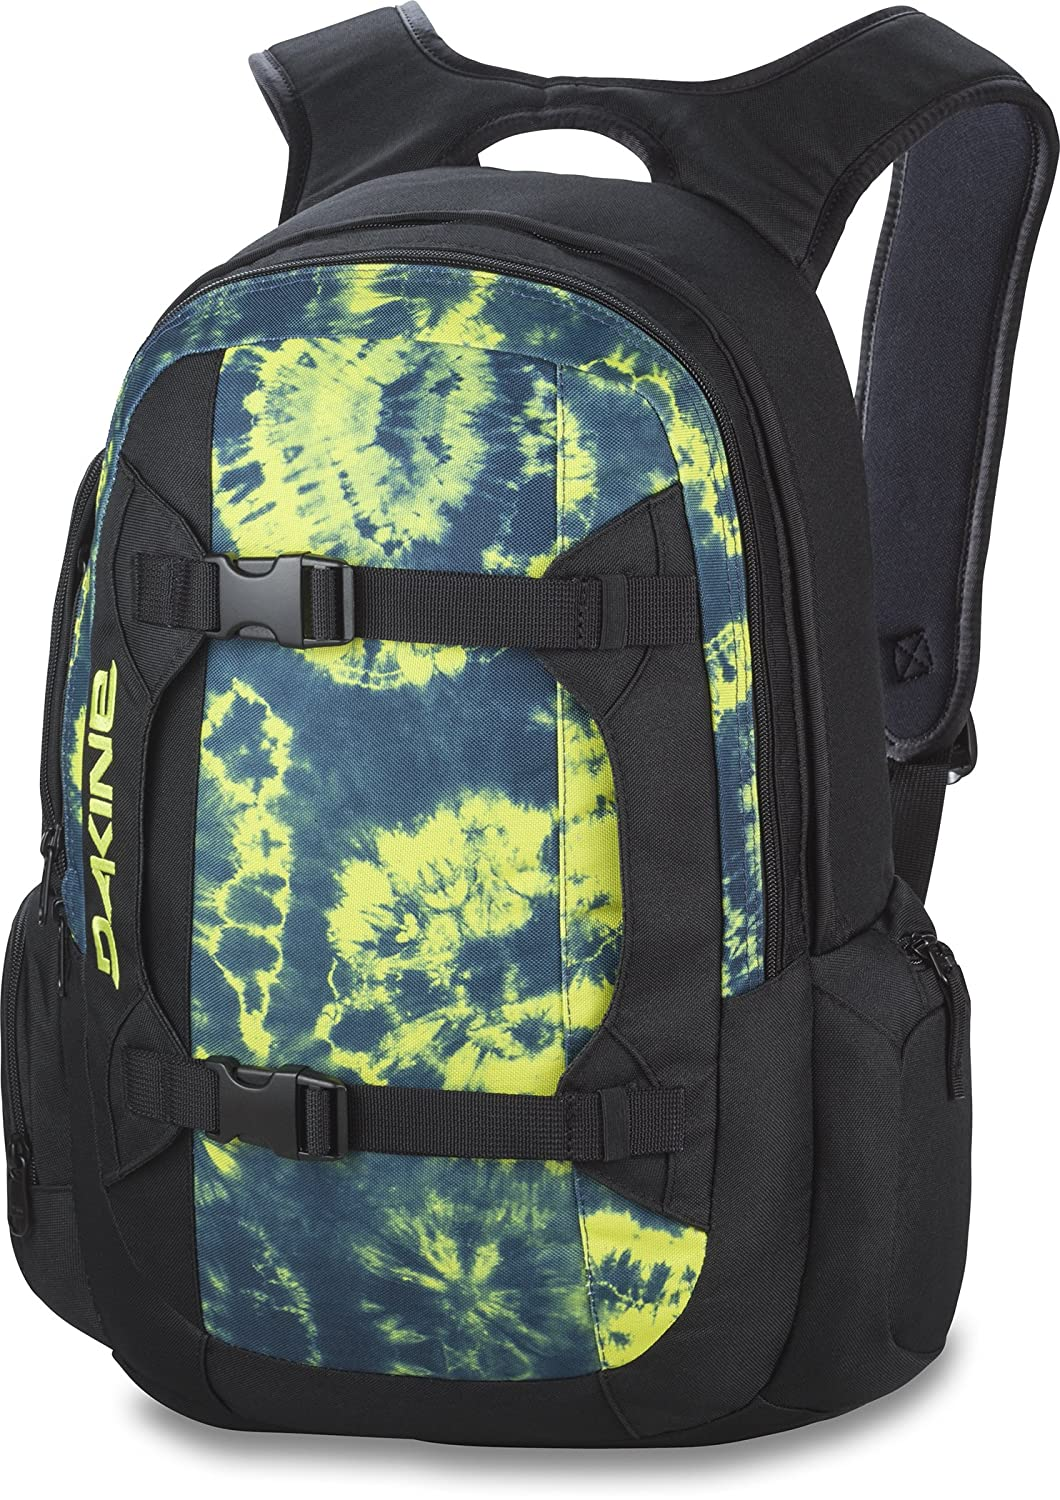 Amazon.com : Dakine Mission Backpack, Brick, 25L : Sports & Outdoors